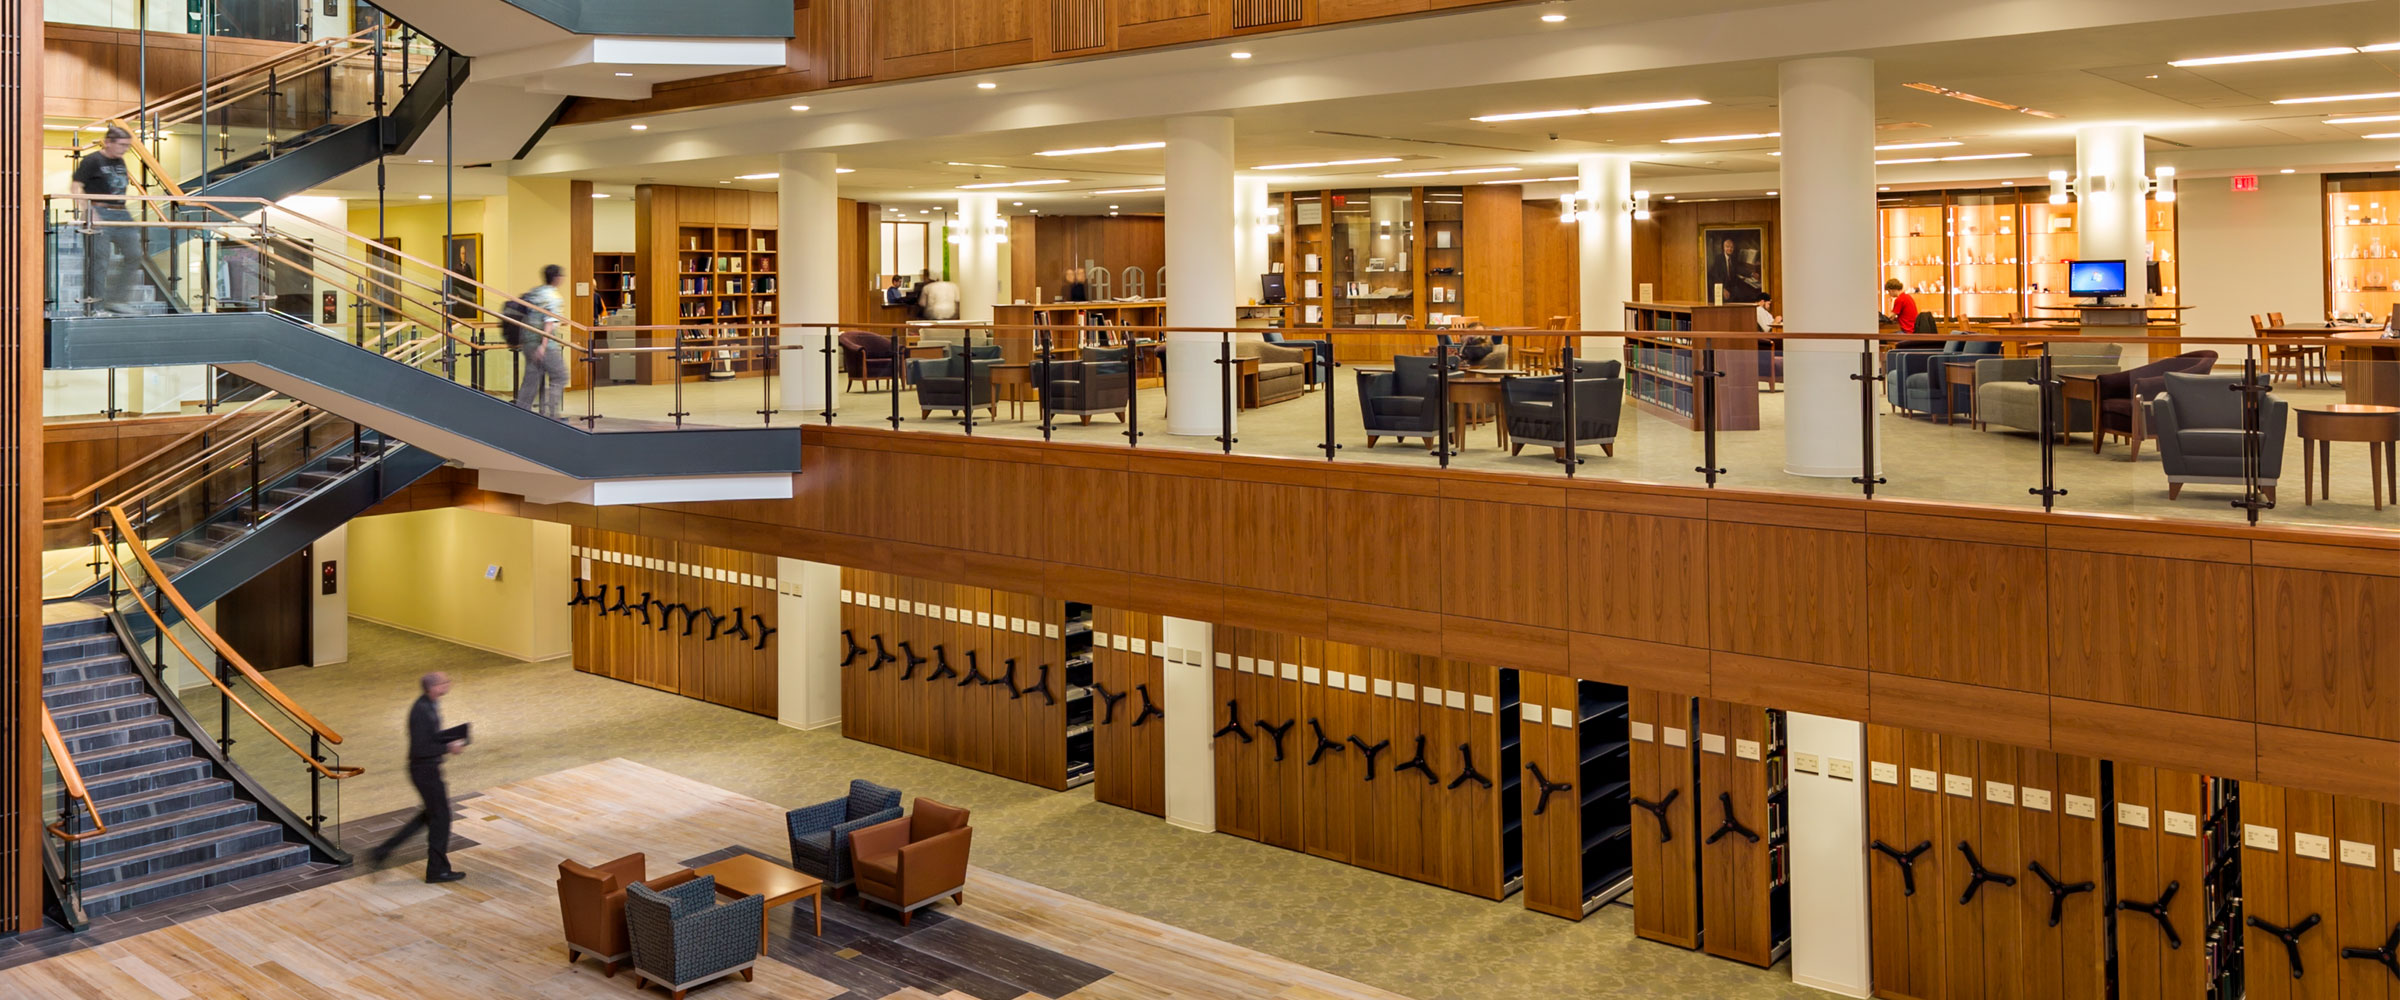 Home Page Photo - Library Atrium